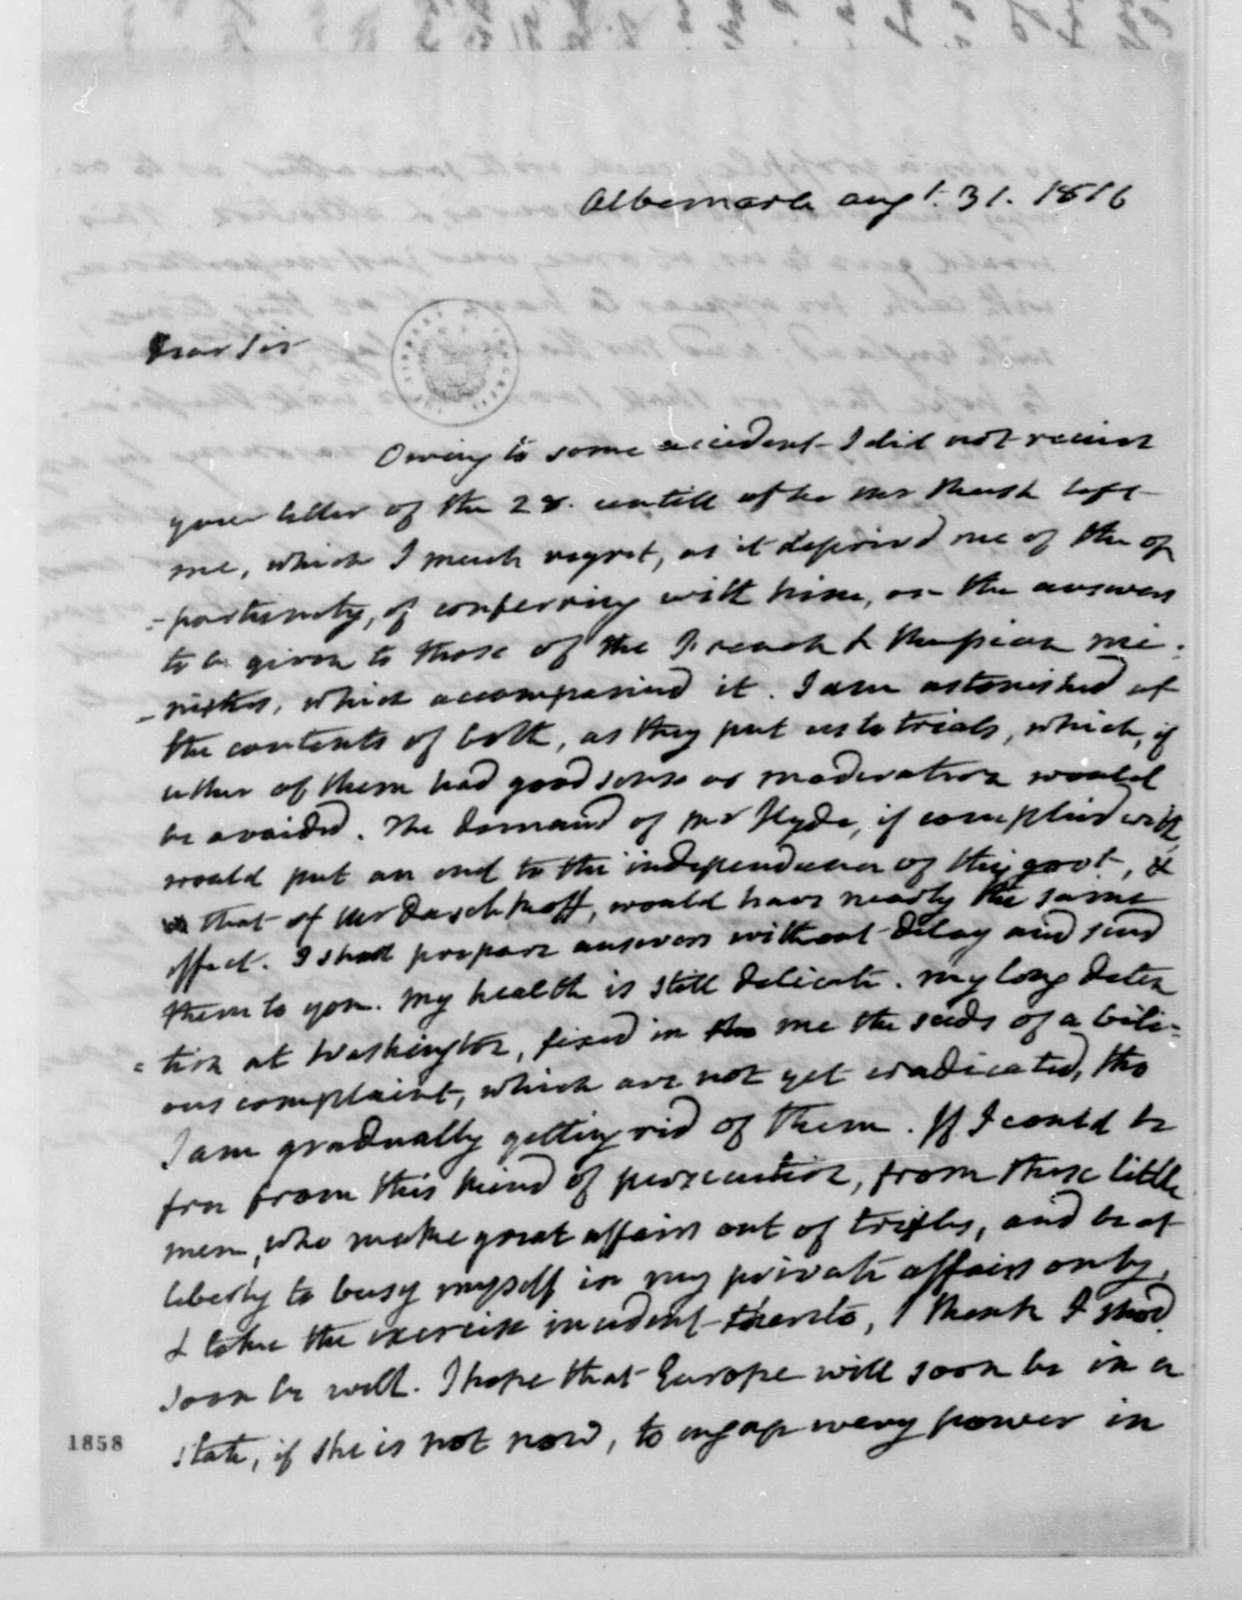 James Monroe to James Madison, August 31, 1816.